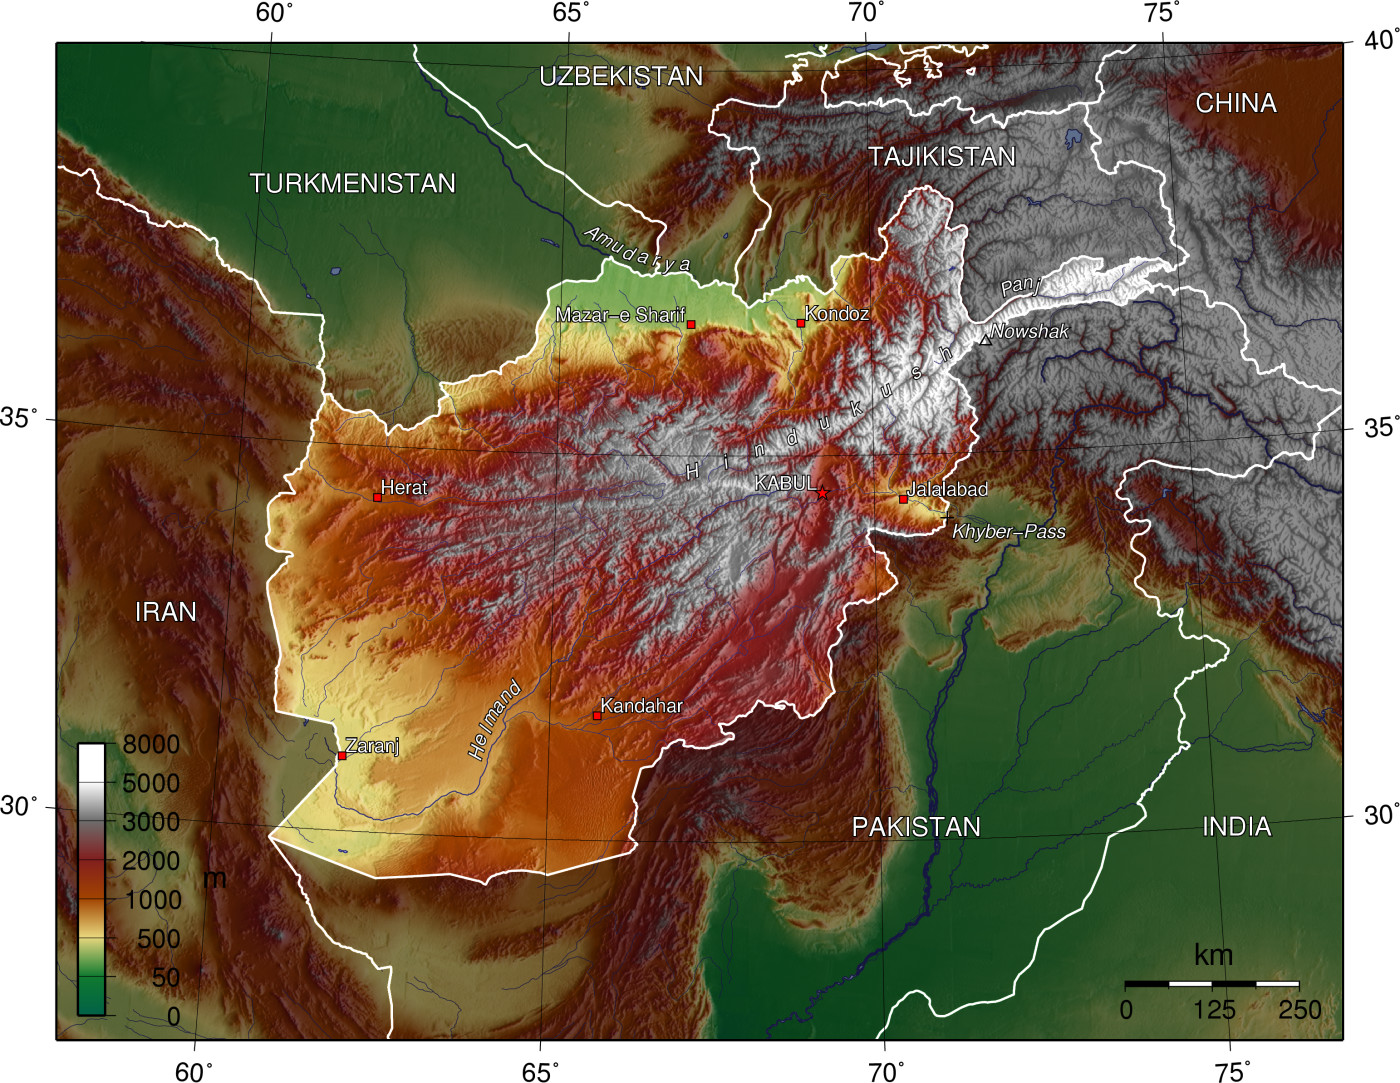 http://upload.wikimedia.org/wikipedia/commons/4/45/Afghan_topo_en.jpg